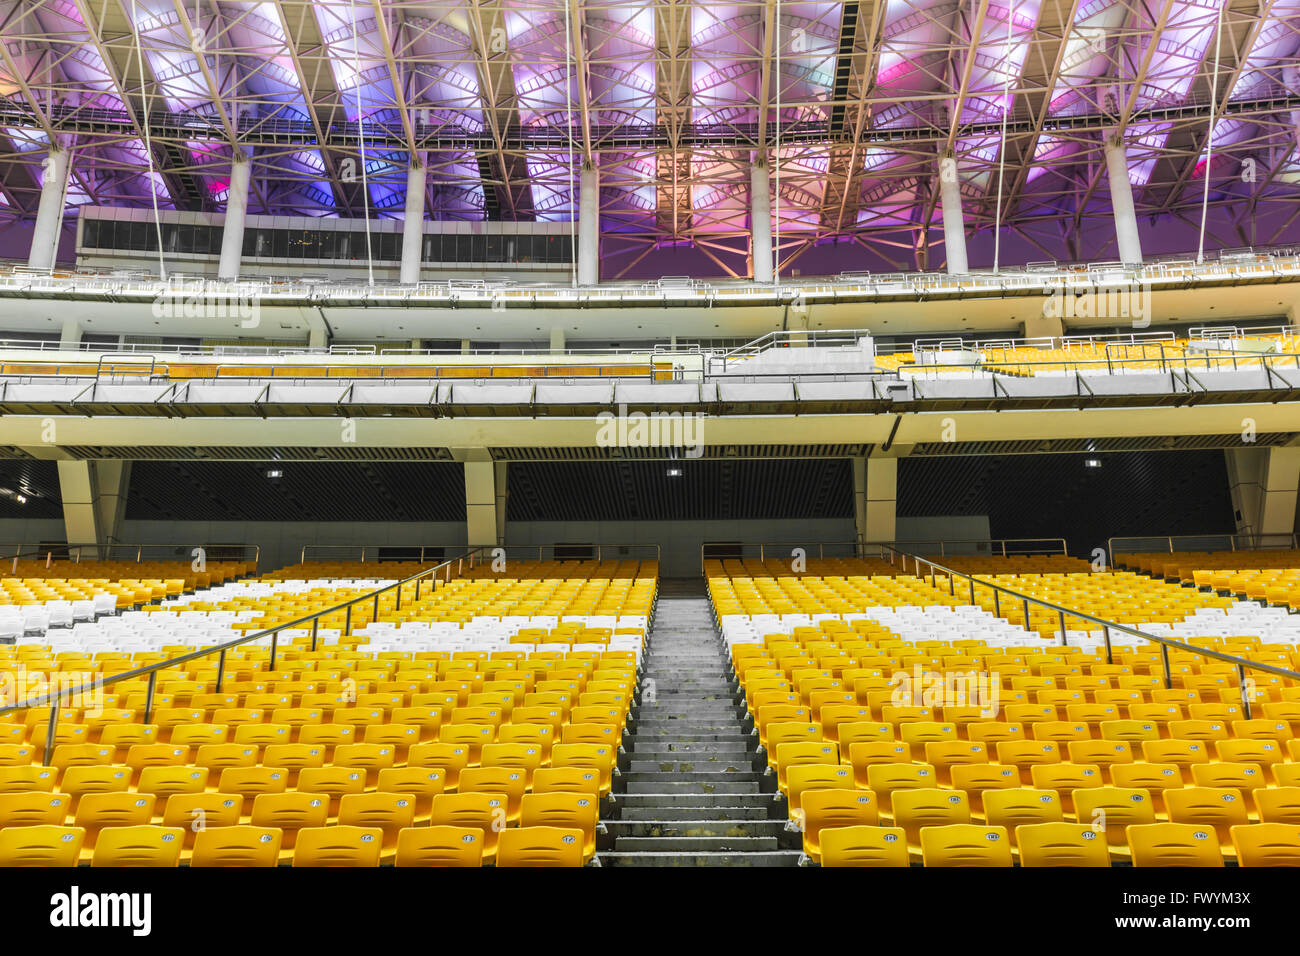 Haixinsha Guangzhou Asian Games venues panorama - Stock Image